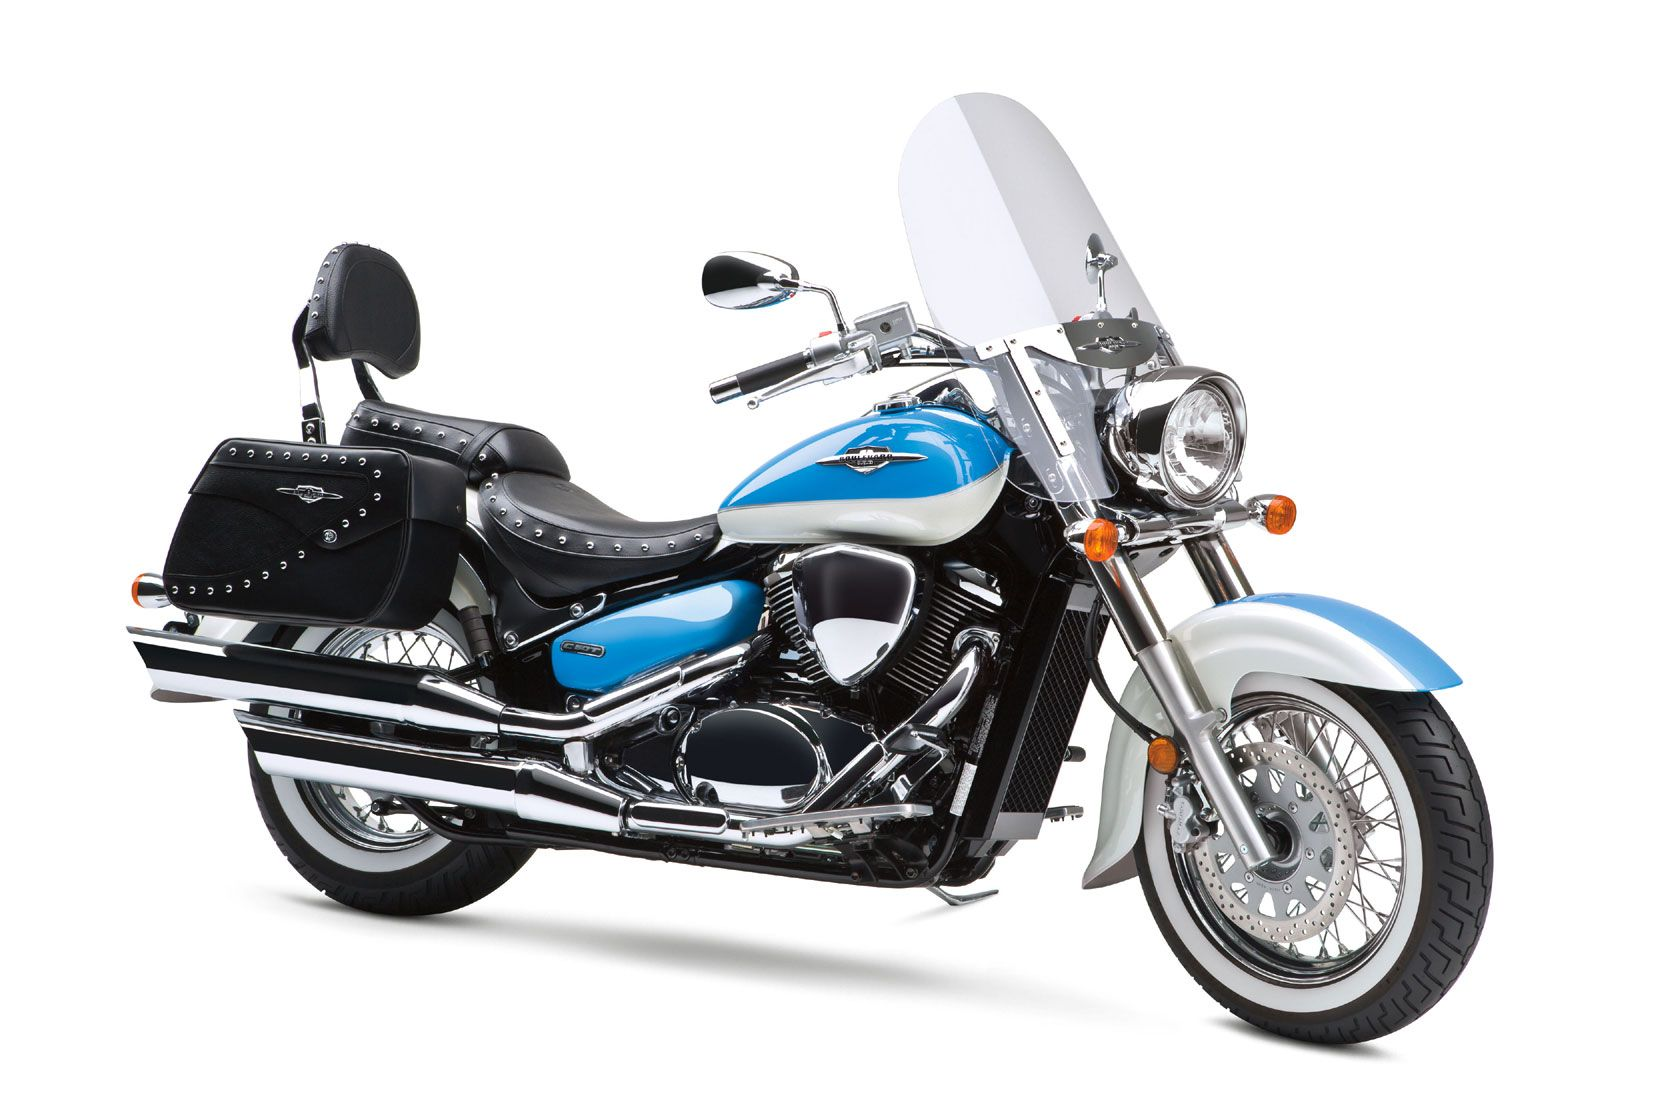 2008 Suzuki Boulevard C50 Limited Edition (With images)